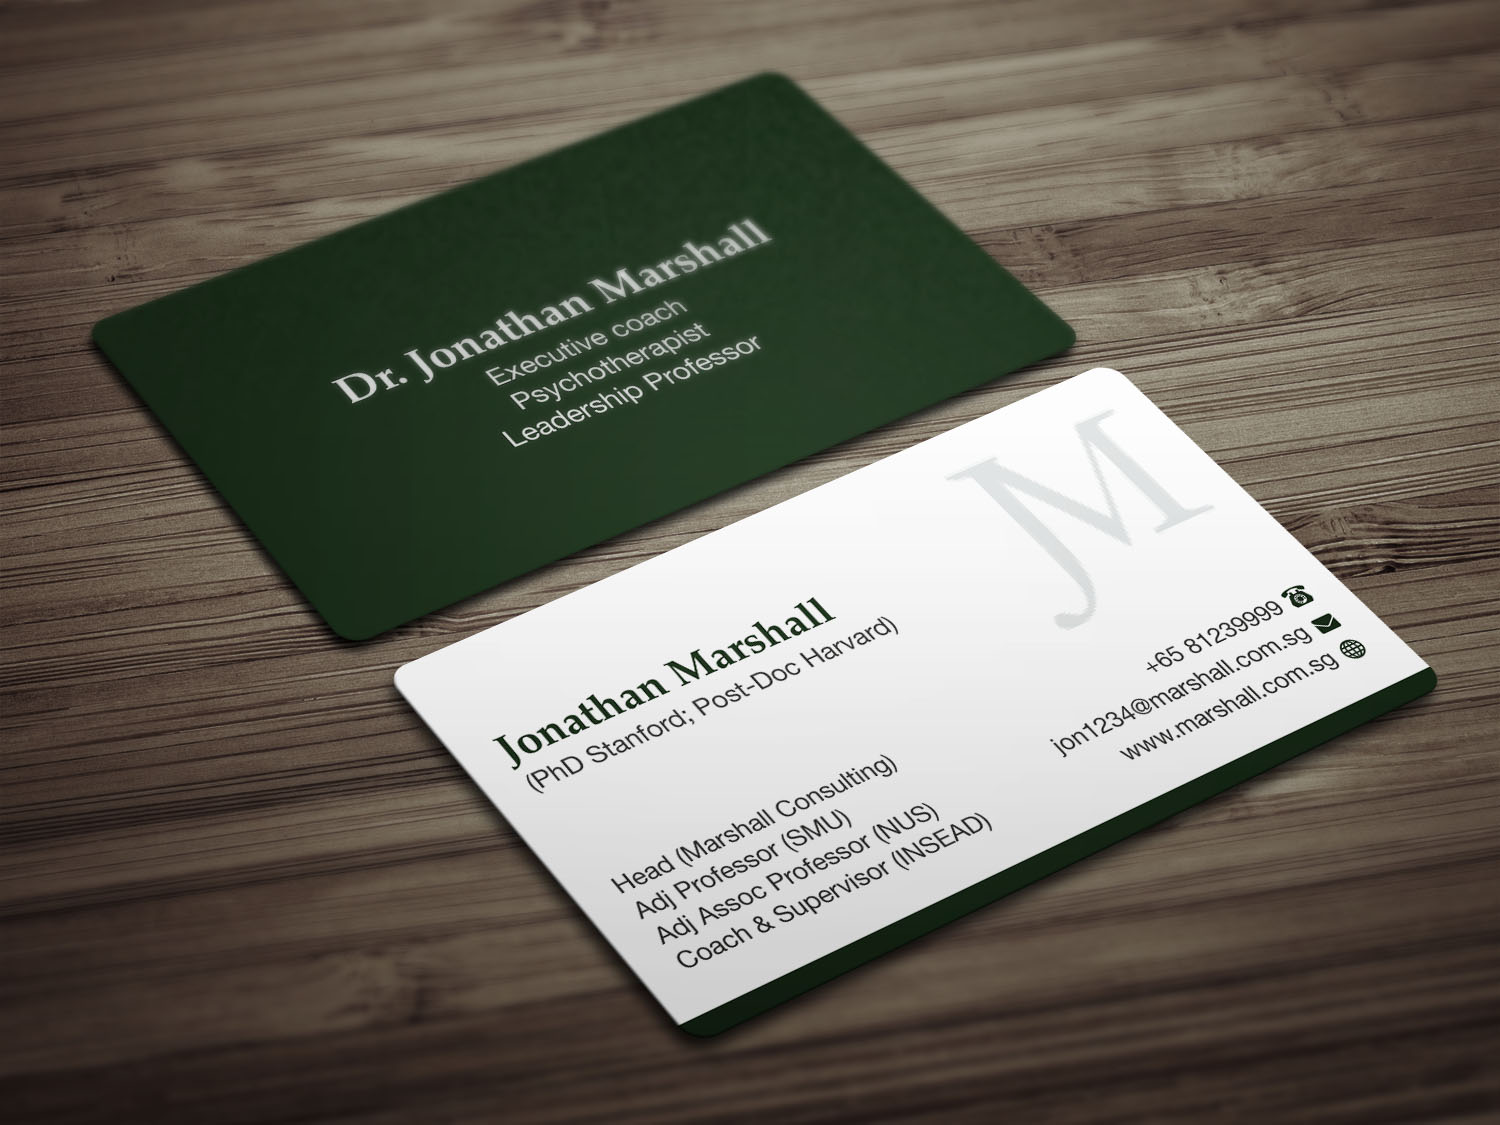 Upmarket elegant psychology business card design for marshall business card design by mdreyad for marshall consulting pte ltd design 17431950 reheart Gallery